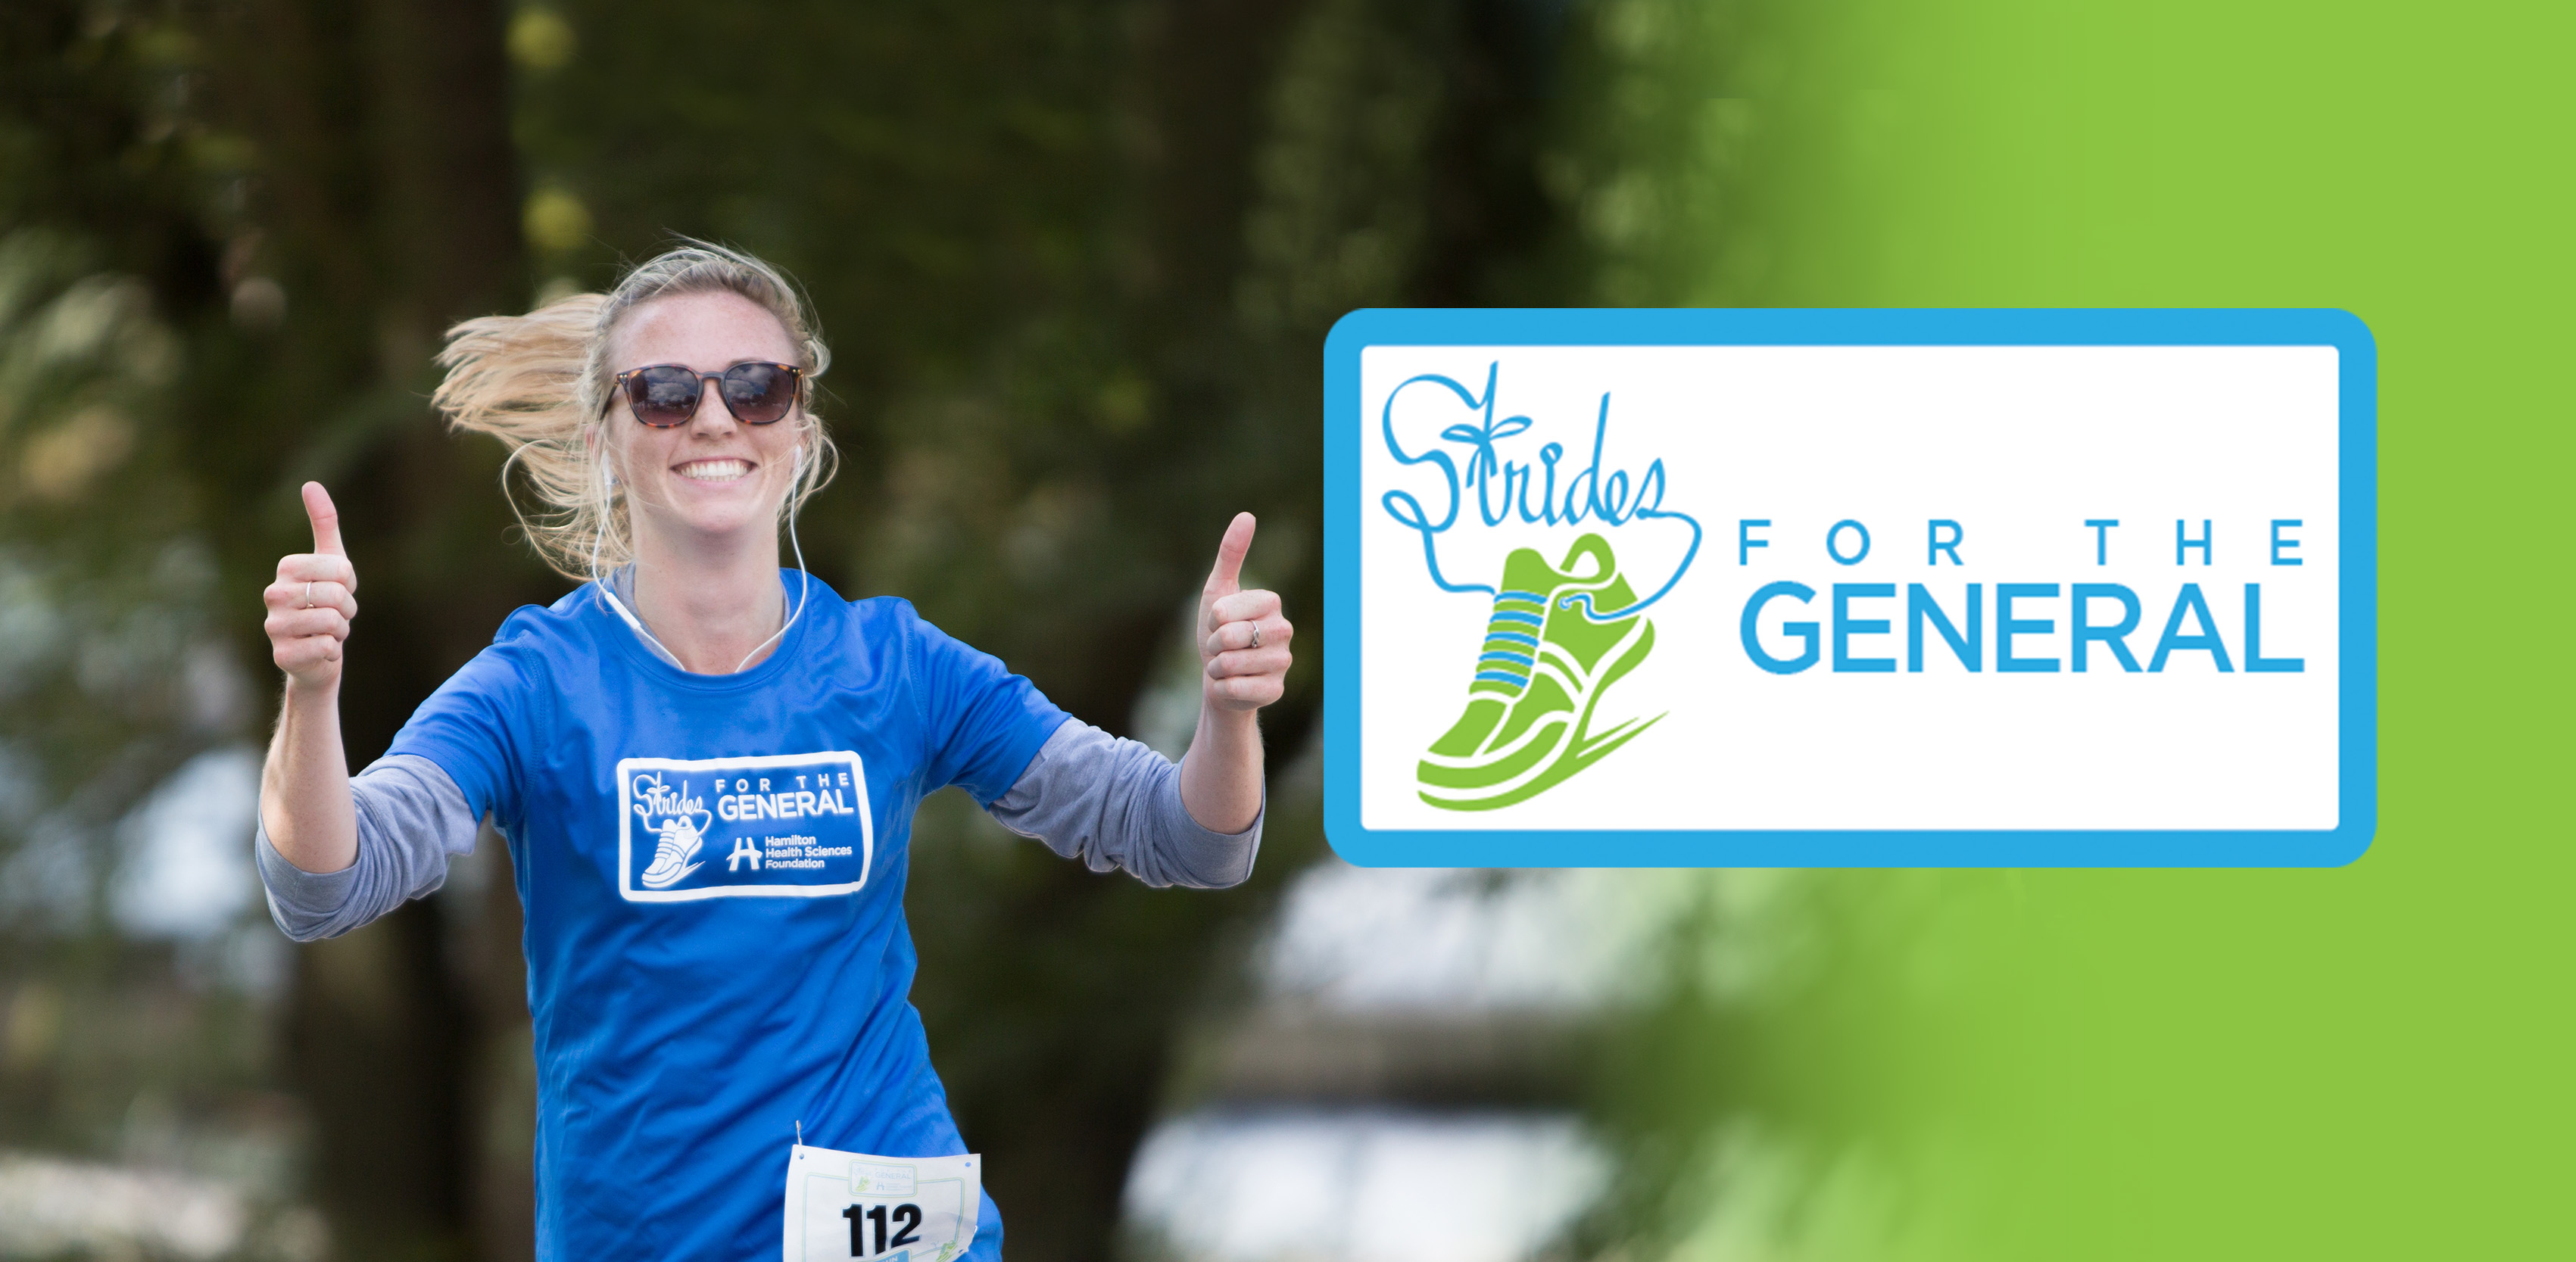 A runner gives two thumbs up with Strides logo